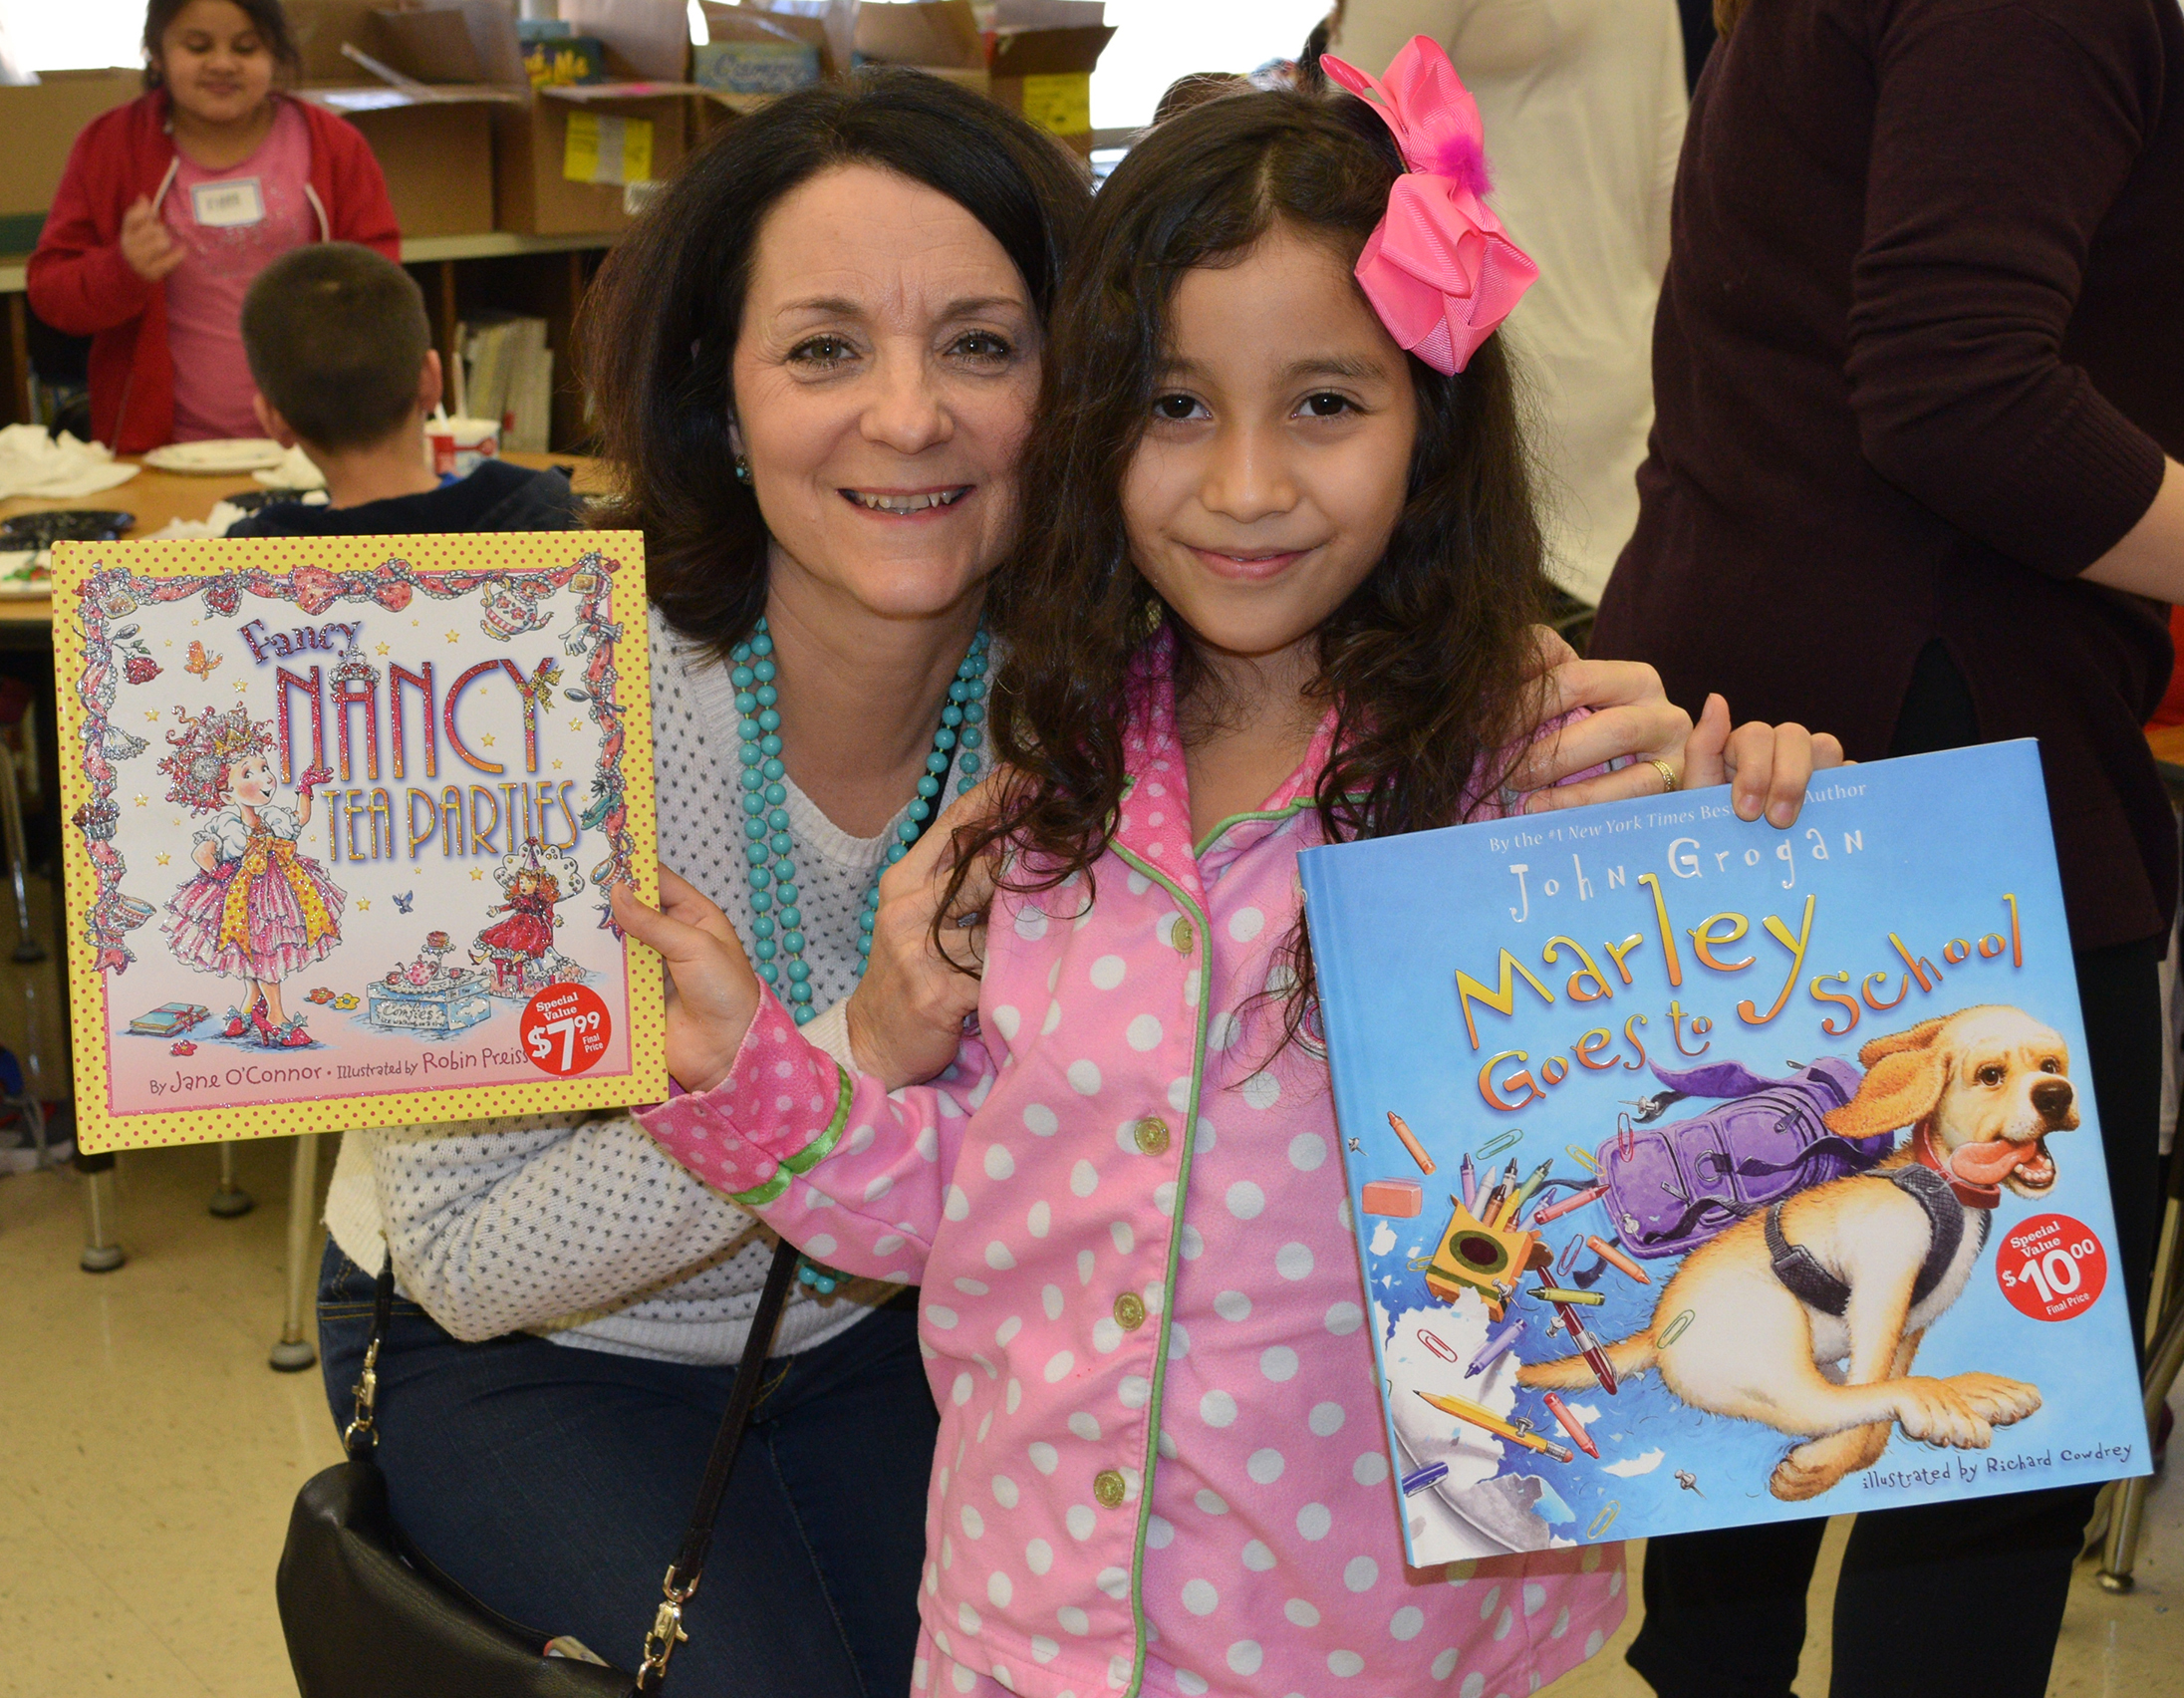 Making It Better Executive Director Jacque Daughtry with student at Ross Elementary School holding new books donated by Scholastic Book Fairs®.